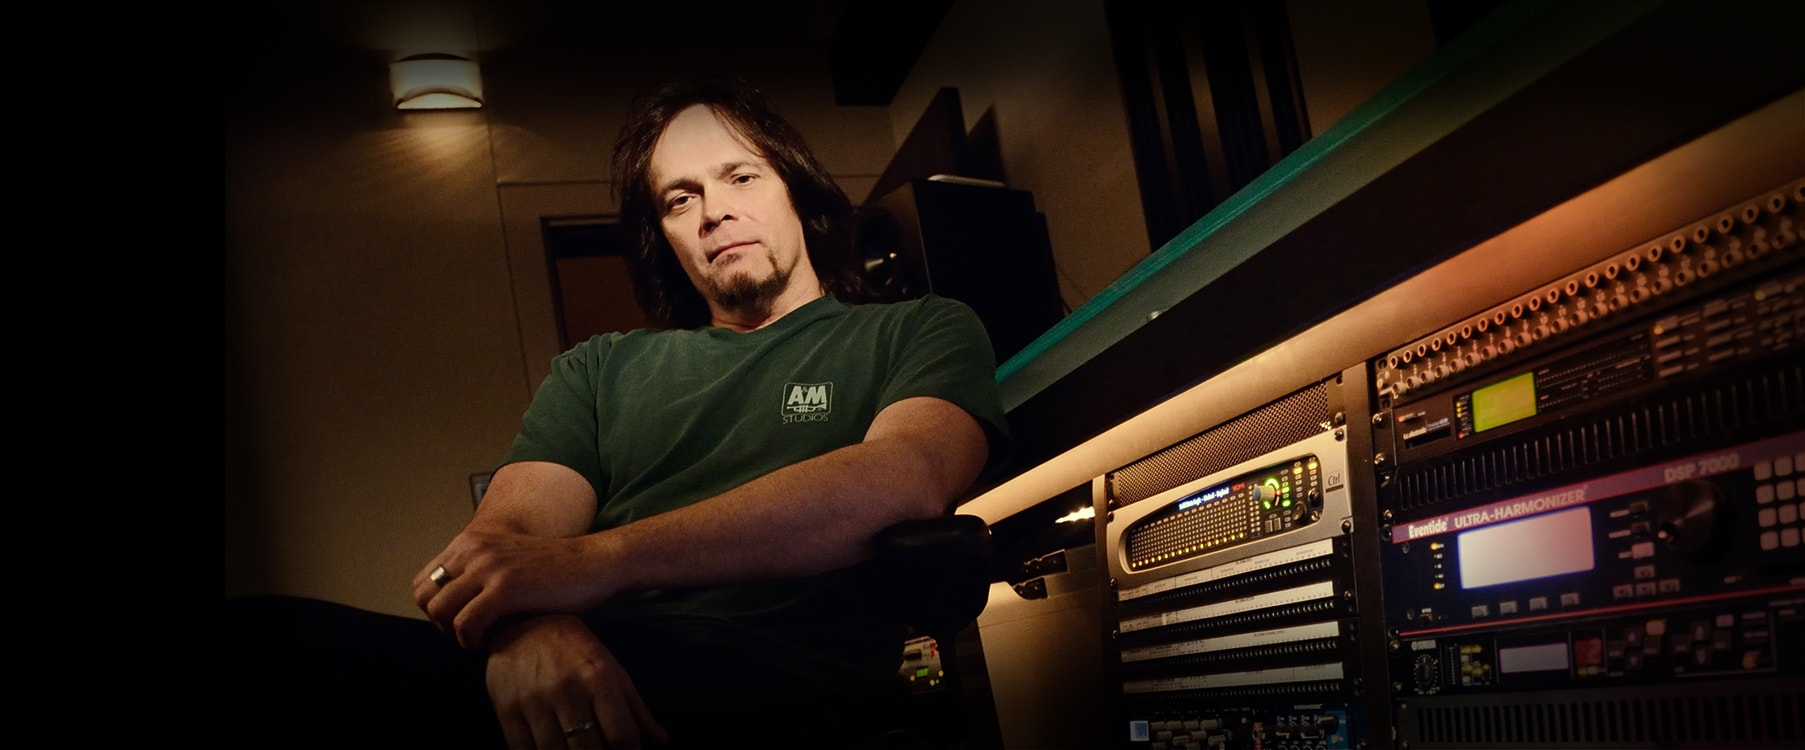 Rich Chycki on Mixing Rush and Dream Theater with UADPlug‑Ins